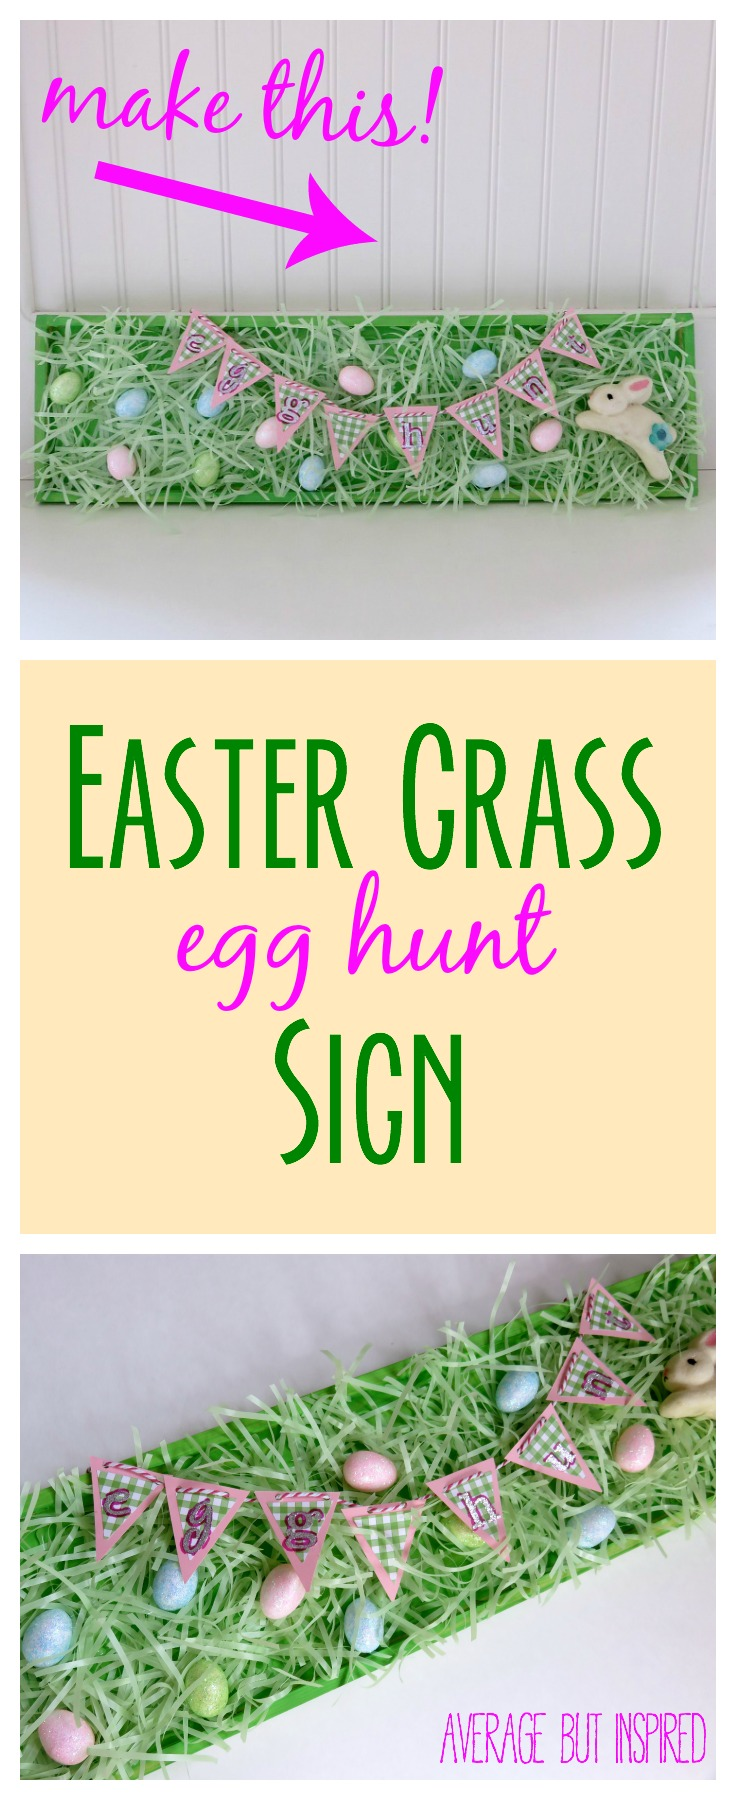 Easter-Grass-Egg-Hung-Sign avergae inspired